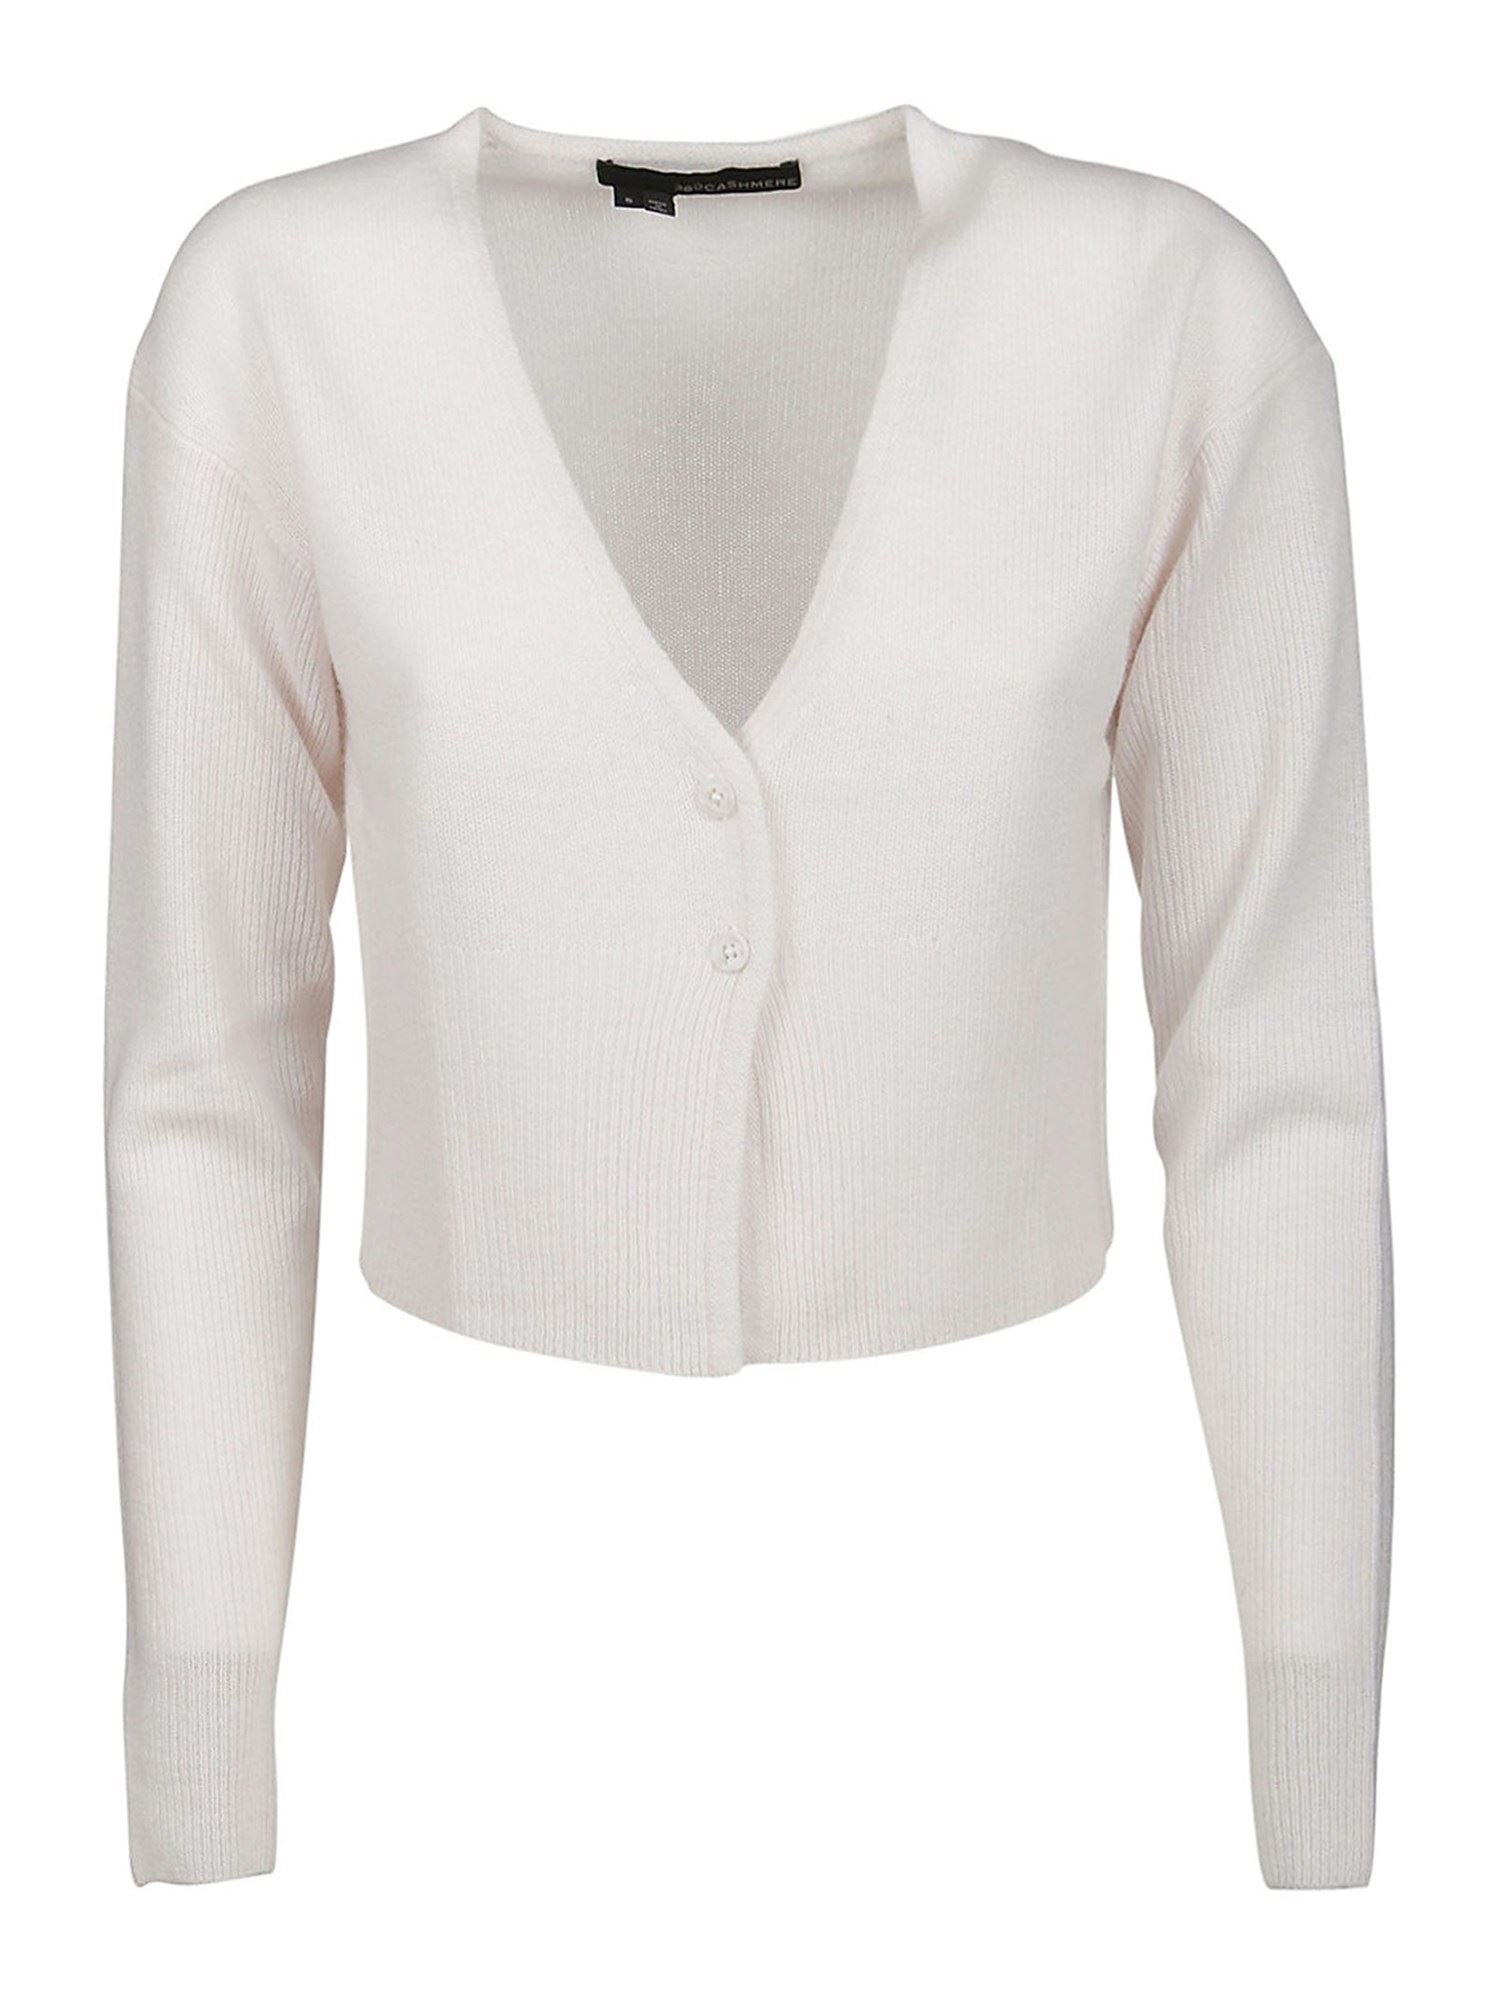 360cashmere Cardigans GRACE CARDIGAN IN WHITE